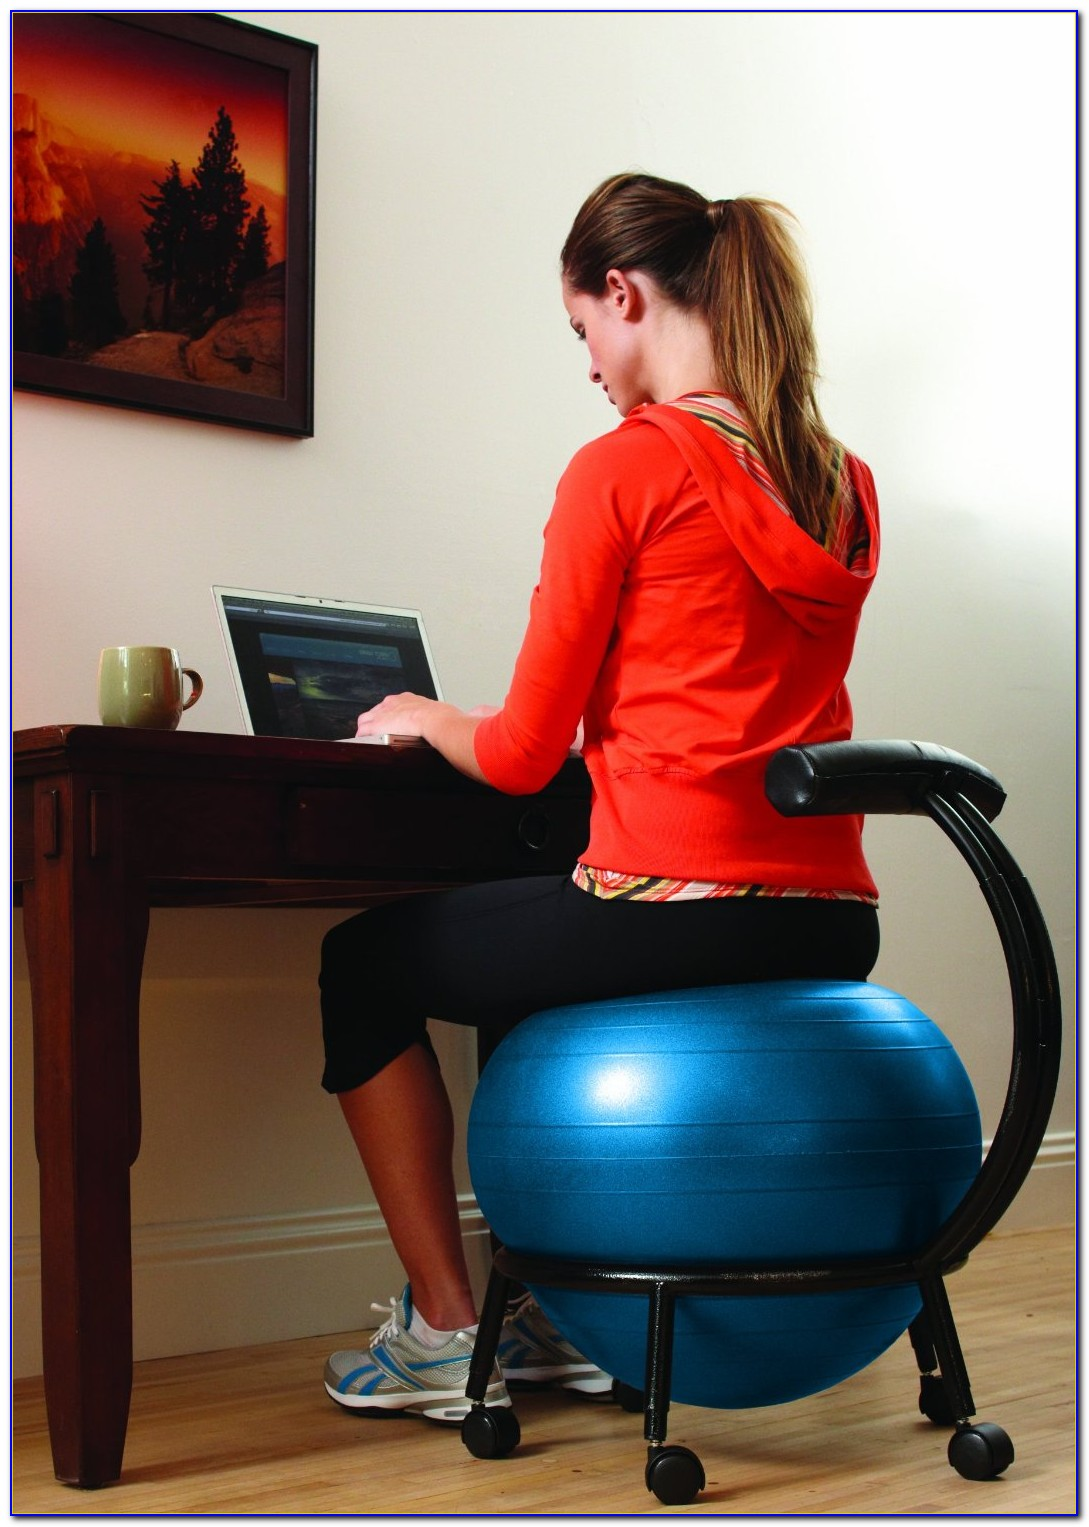 Ball Chair Benefits Yoga Ball Desk Chair Exercises Desk Home Design Ideas